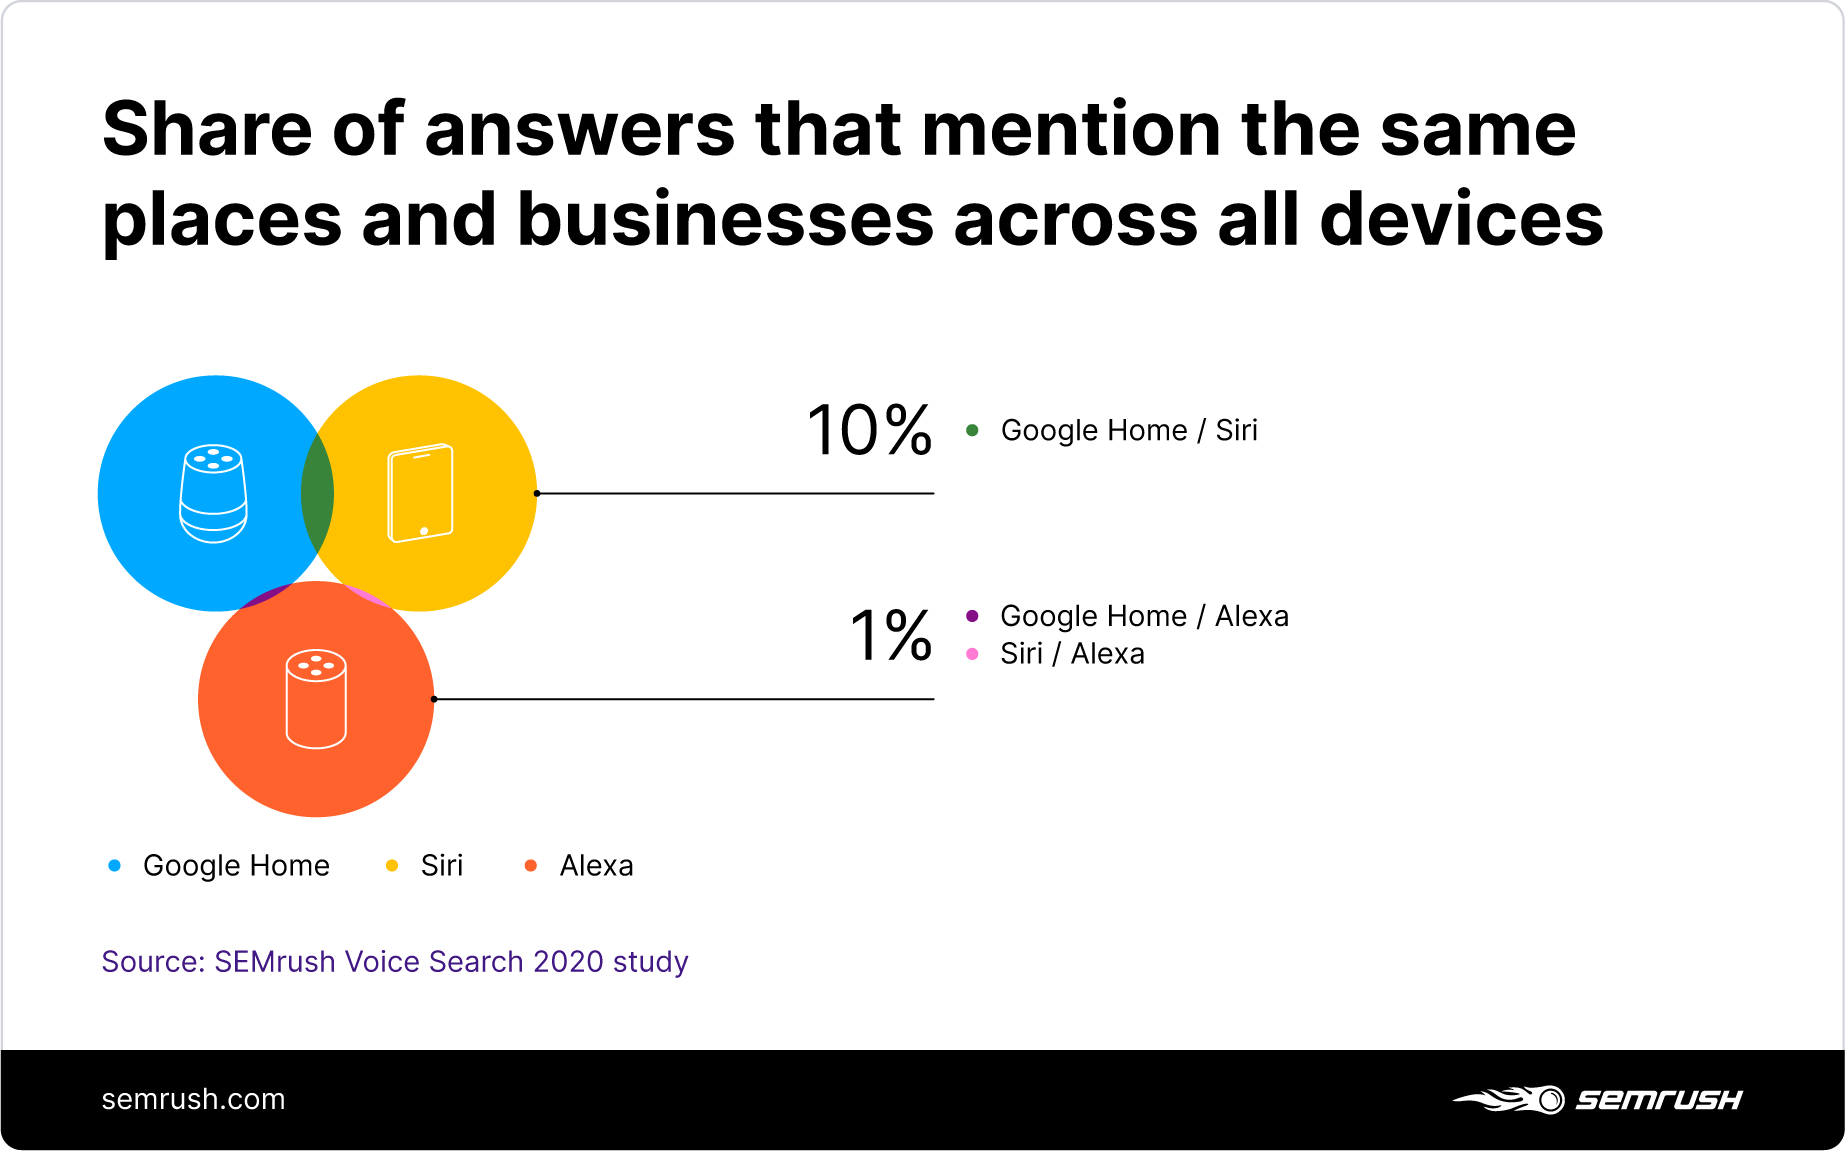 Share of voice assistants' answers that mention the same places and businesses across all devices